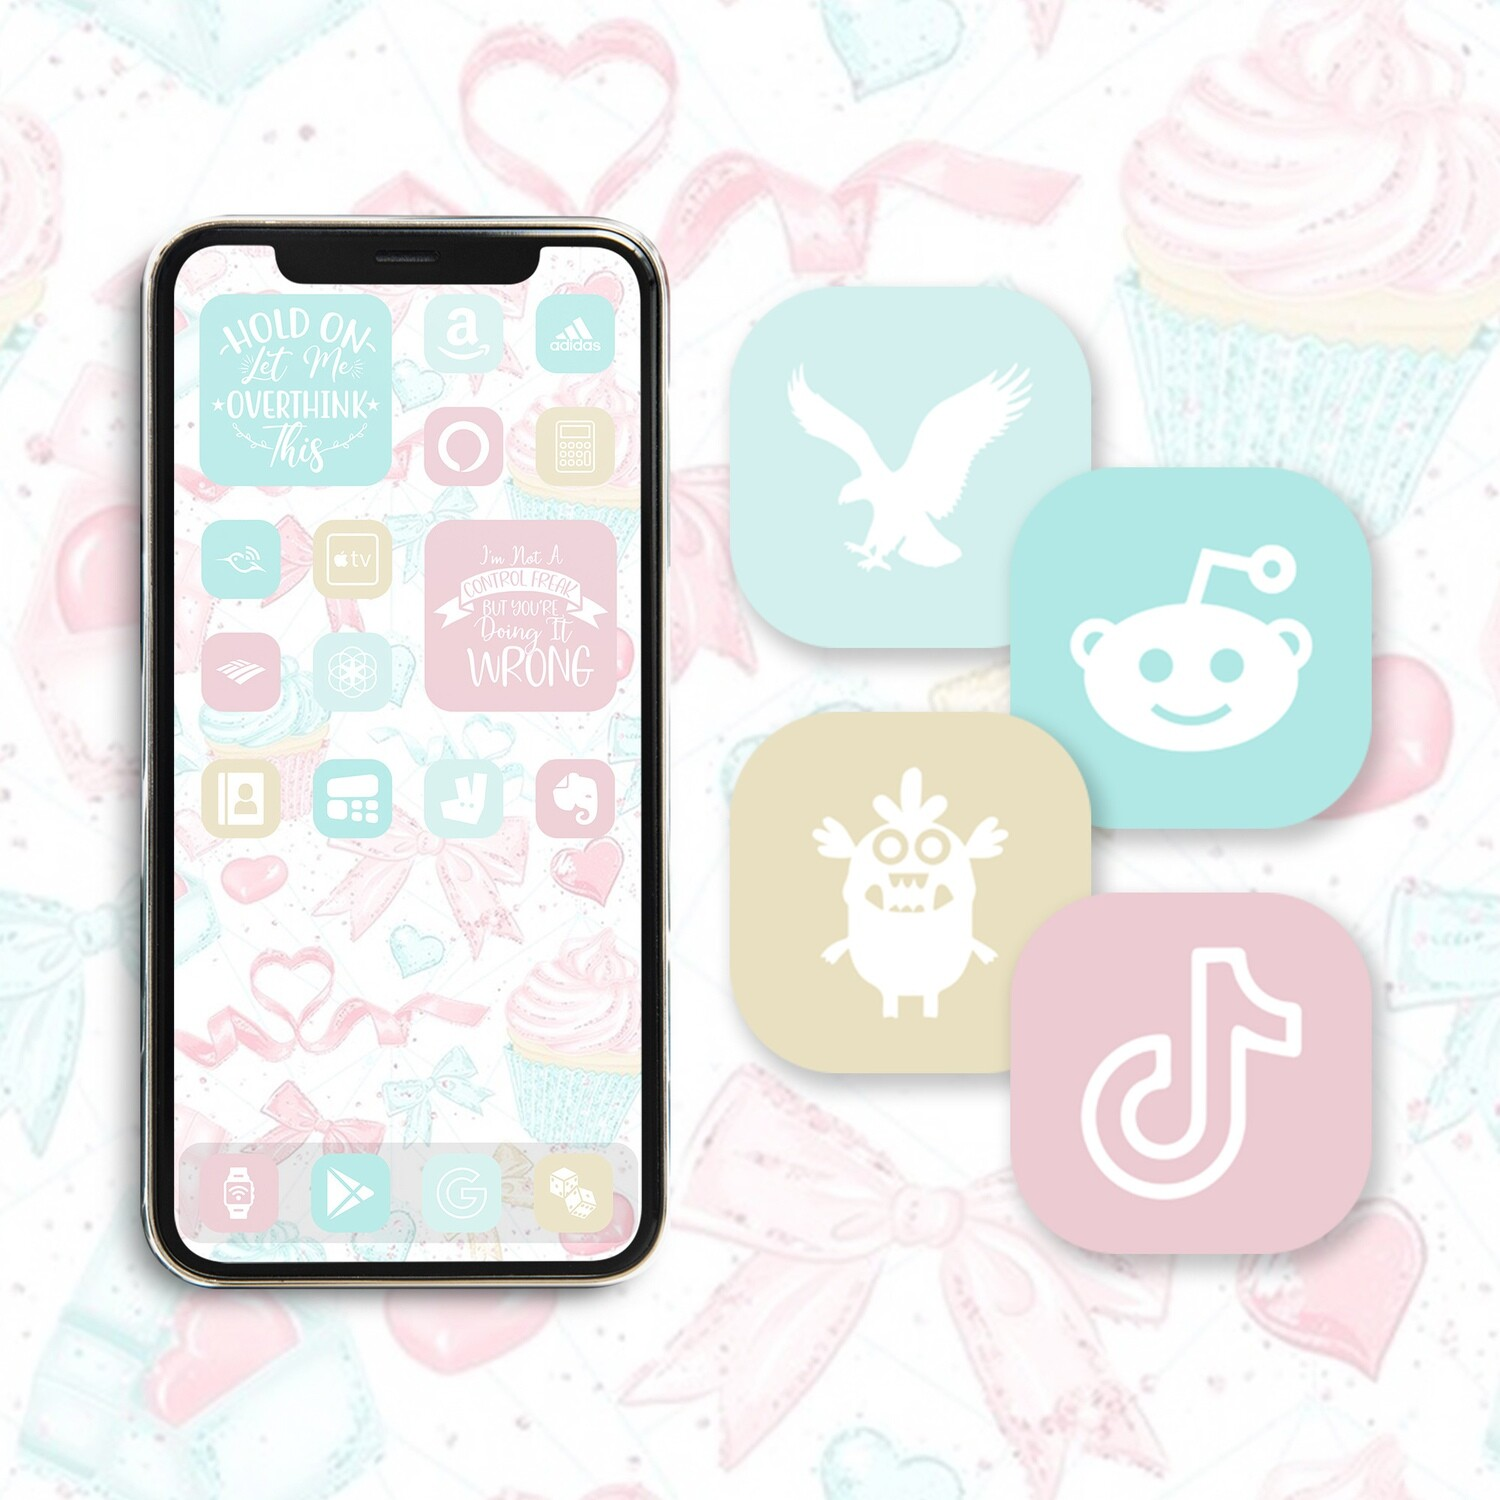 Mint Candy app icons in dusty blue mint pearl white soft pink colors with wallpaper & widgets